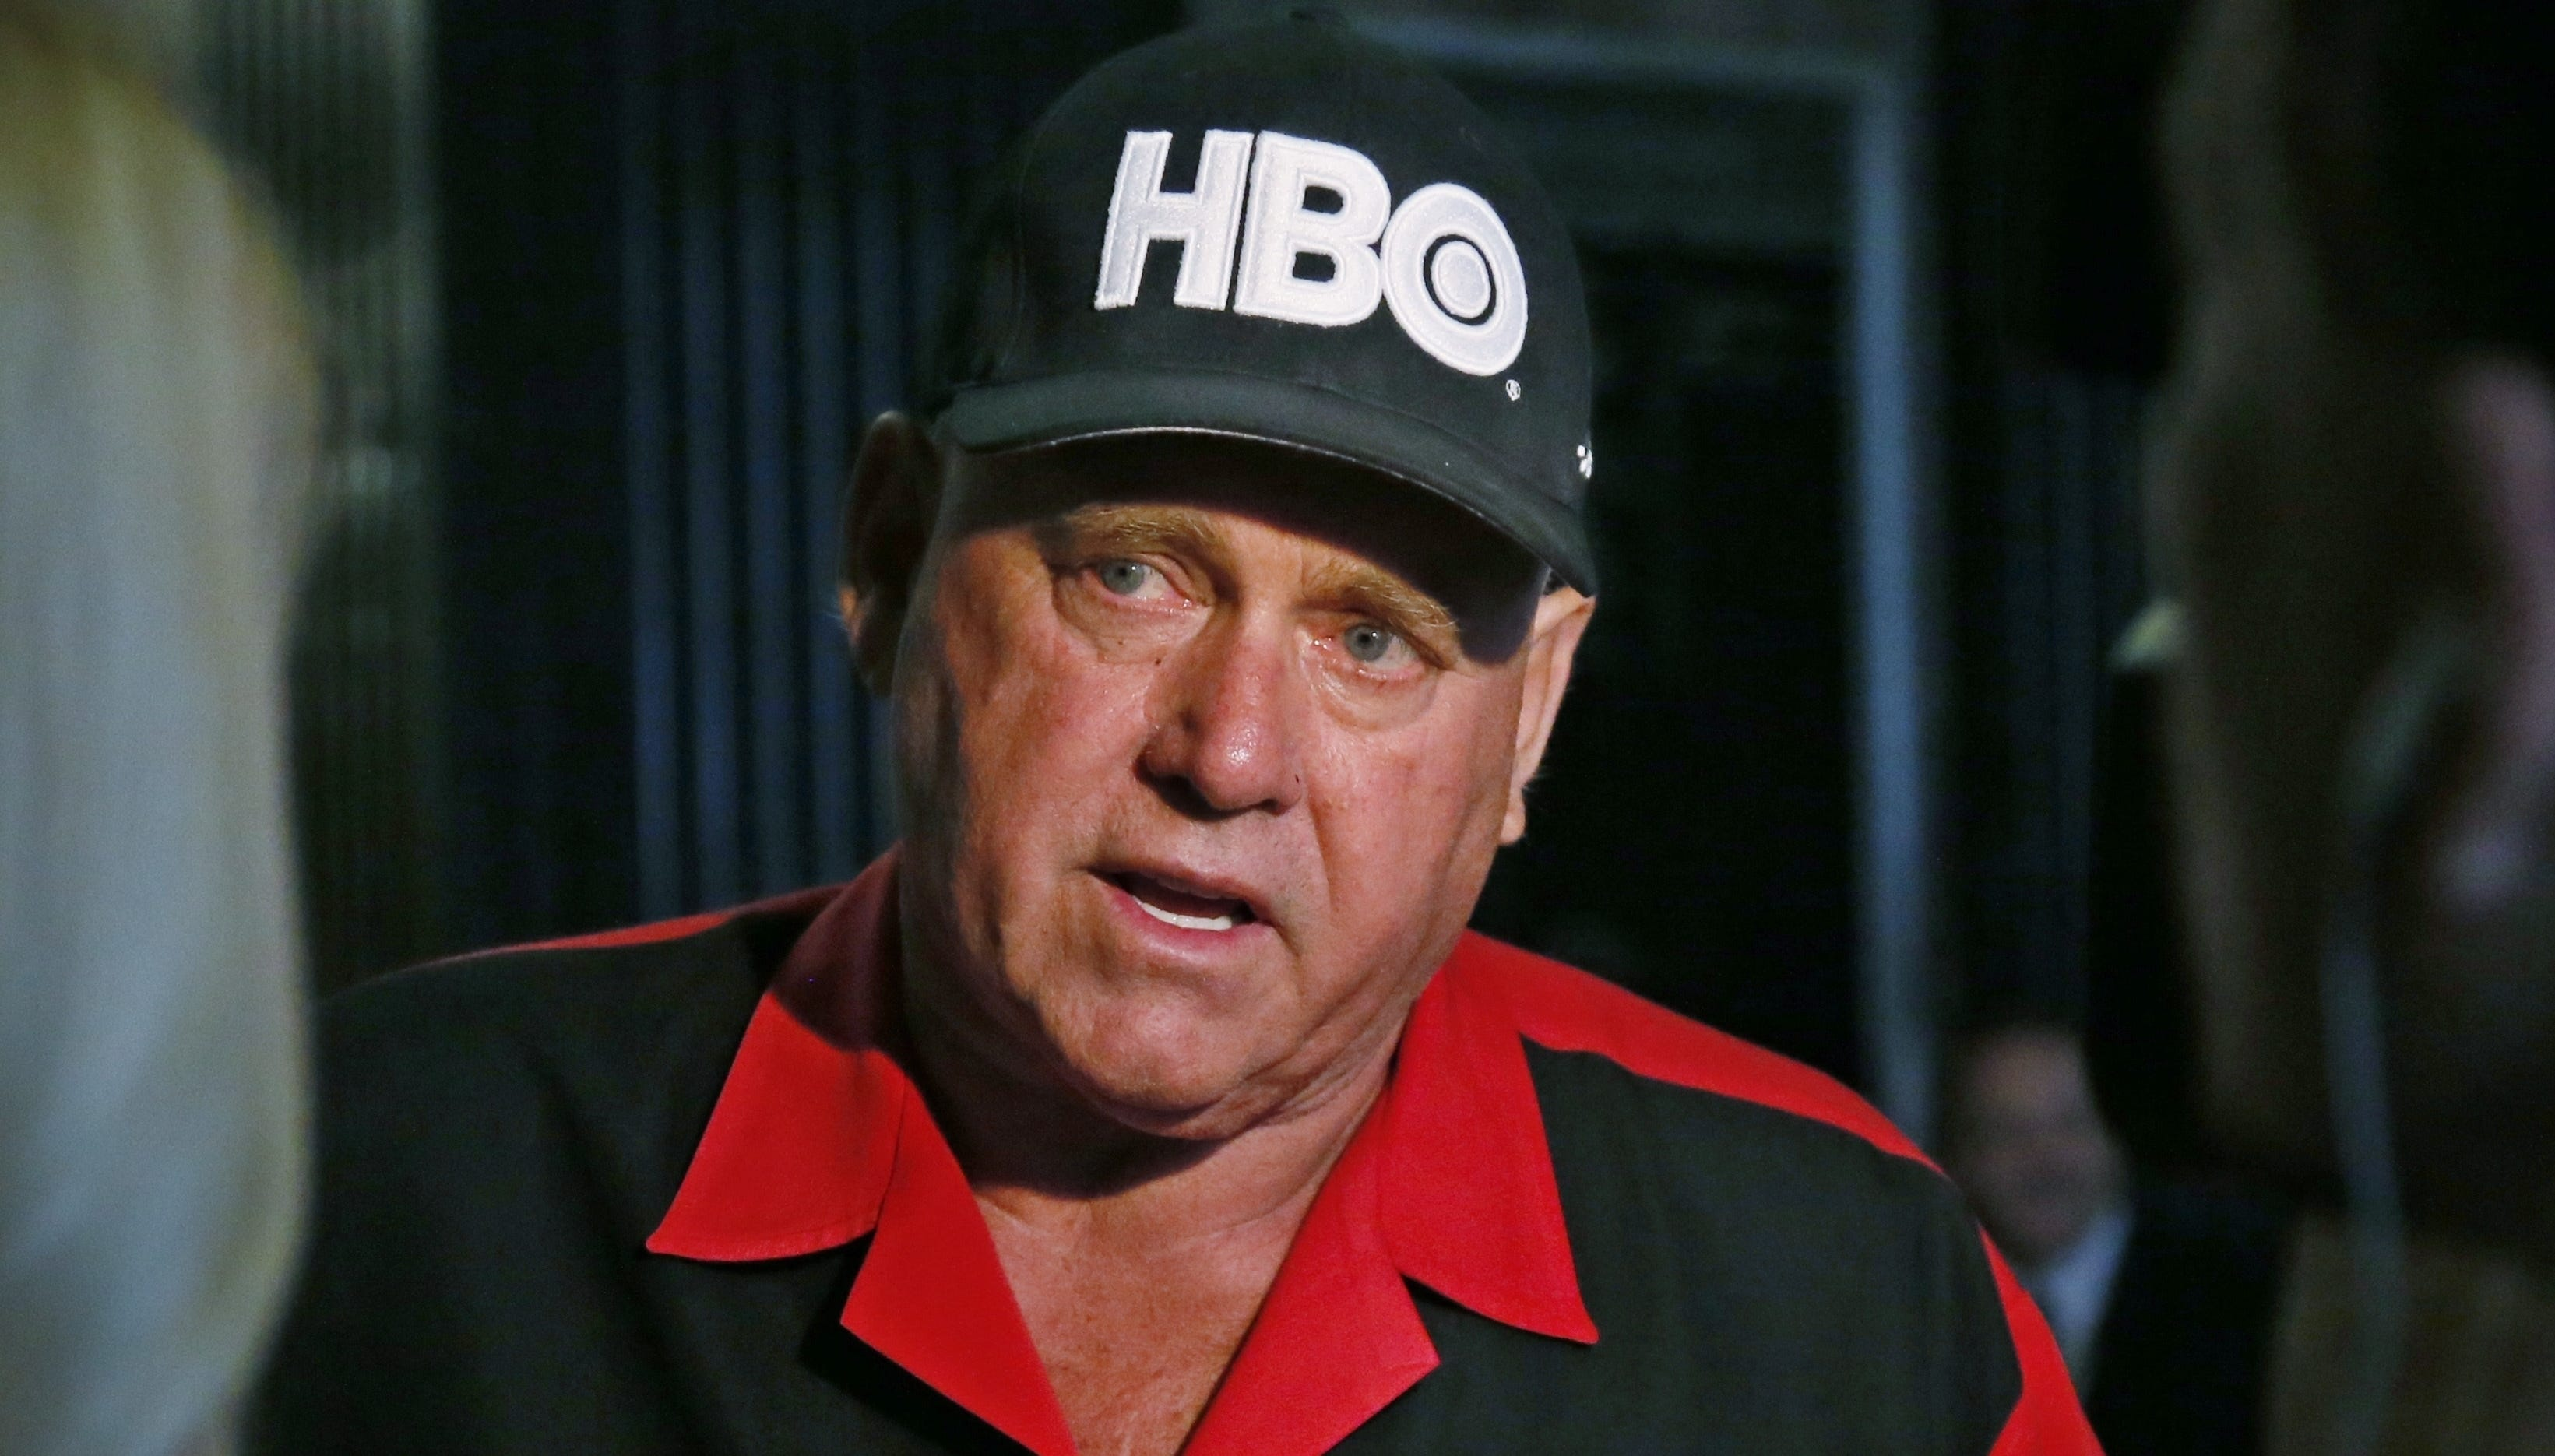 Dennis Hof, owner of the Moonlite BunnyRanch, a legal brothel near Carson City, Nevada, is pictured in 2016 during an interview an in Oklahoma City.   AP FILE - In this June 13, 2016, file photo, Dennis Hof, owner of the Moonlite BunnyRanch, a legal brothel near Carson City, Nevada, is pictured during an interview an in Oklahoma City. Nevada authorities are investigating sexual assault allegations against Hof, a flamboyant legal pimp who is running for the state Legislature. The Nevada Department of Public Safety confirmed the investigation into Hof Wednesday, Sept. 5, 2018. The department said in a statement that the investigation was based on a request by a sheriff in northern Nevada's Carson City, where Hof owns several legal brothels. (AP Photo/Sue Ogrocki, File)